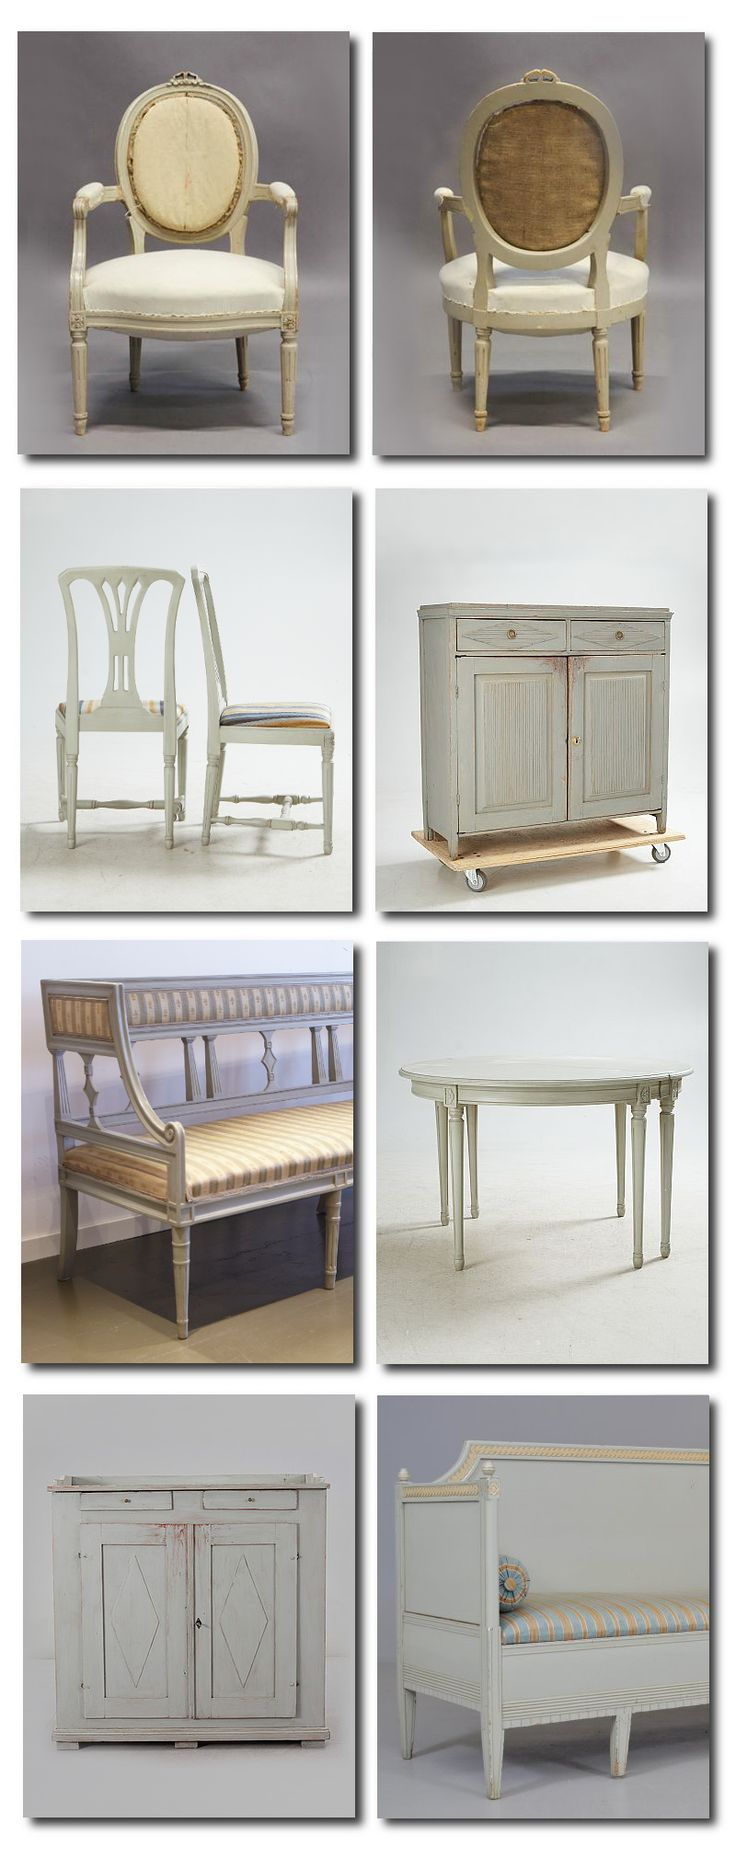 Gustavian Furniture In Gray --- Love this. We have many similarly designed pieces at Pavement!